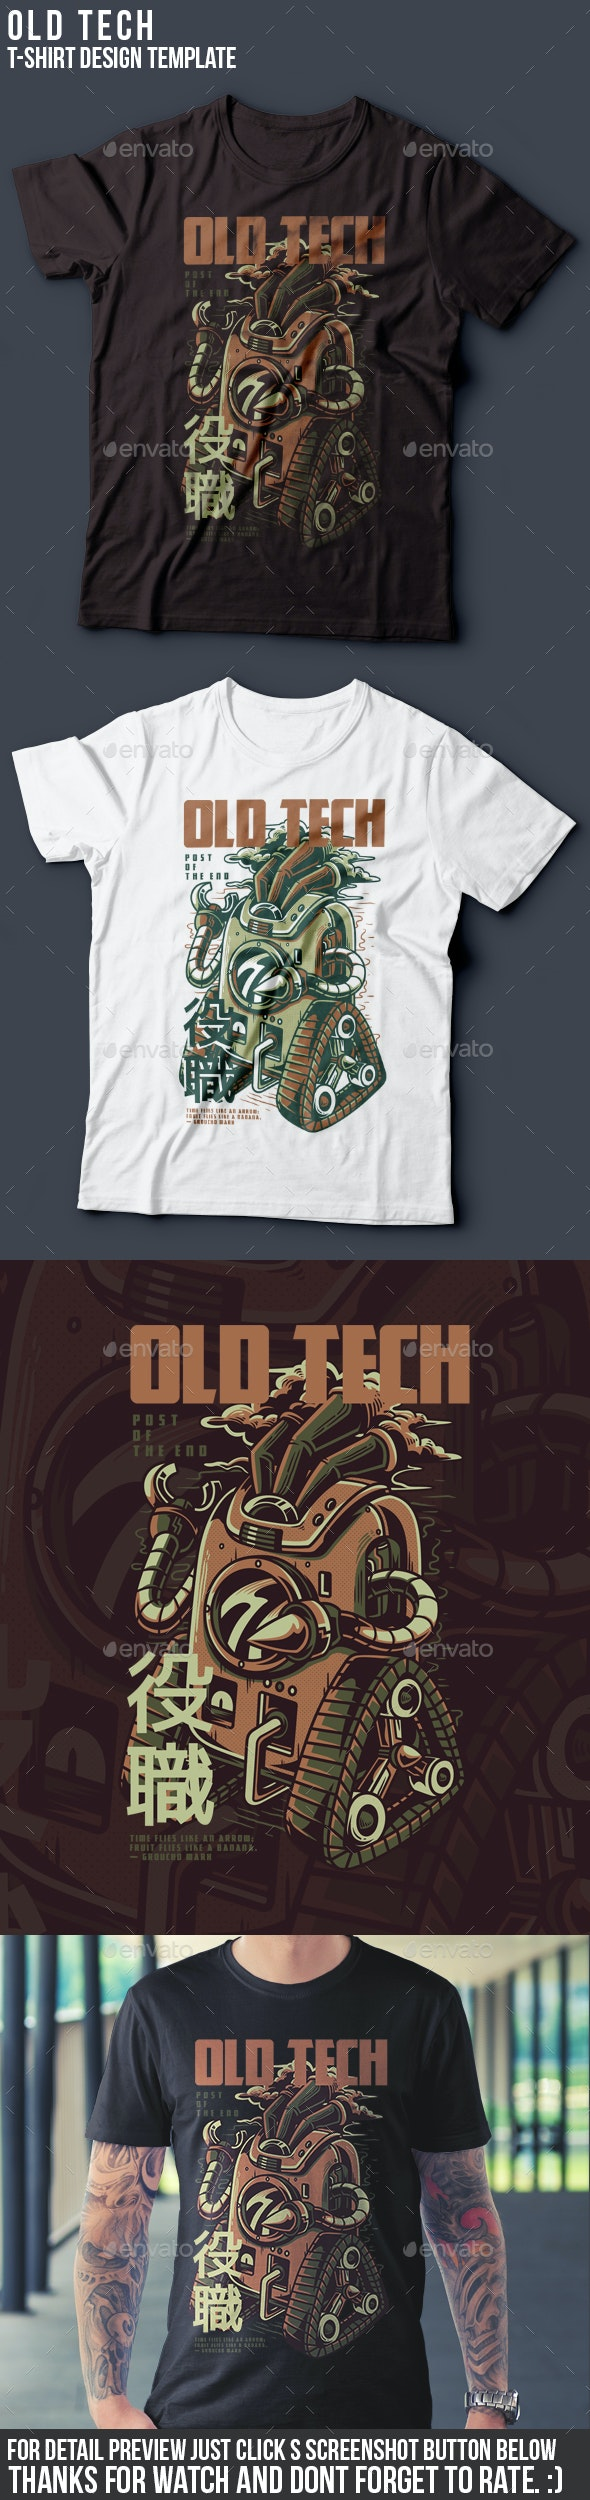 Old Tech T-Shirt Design - Grunge Designs